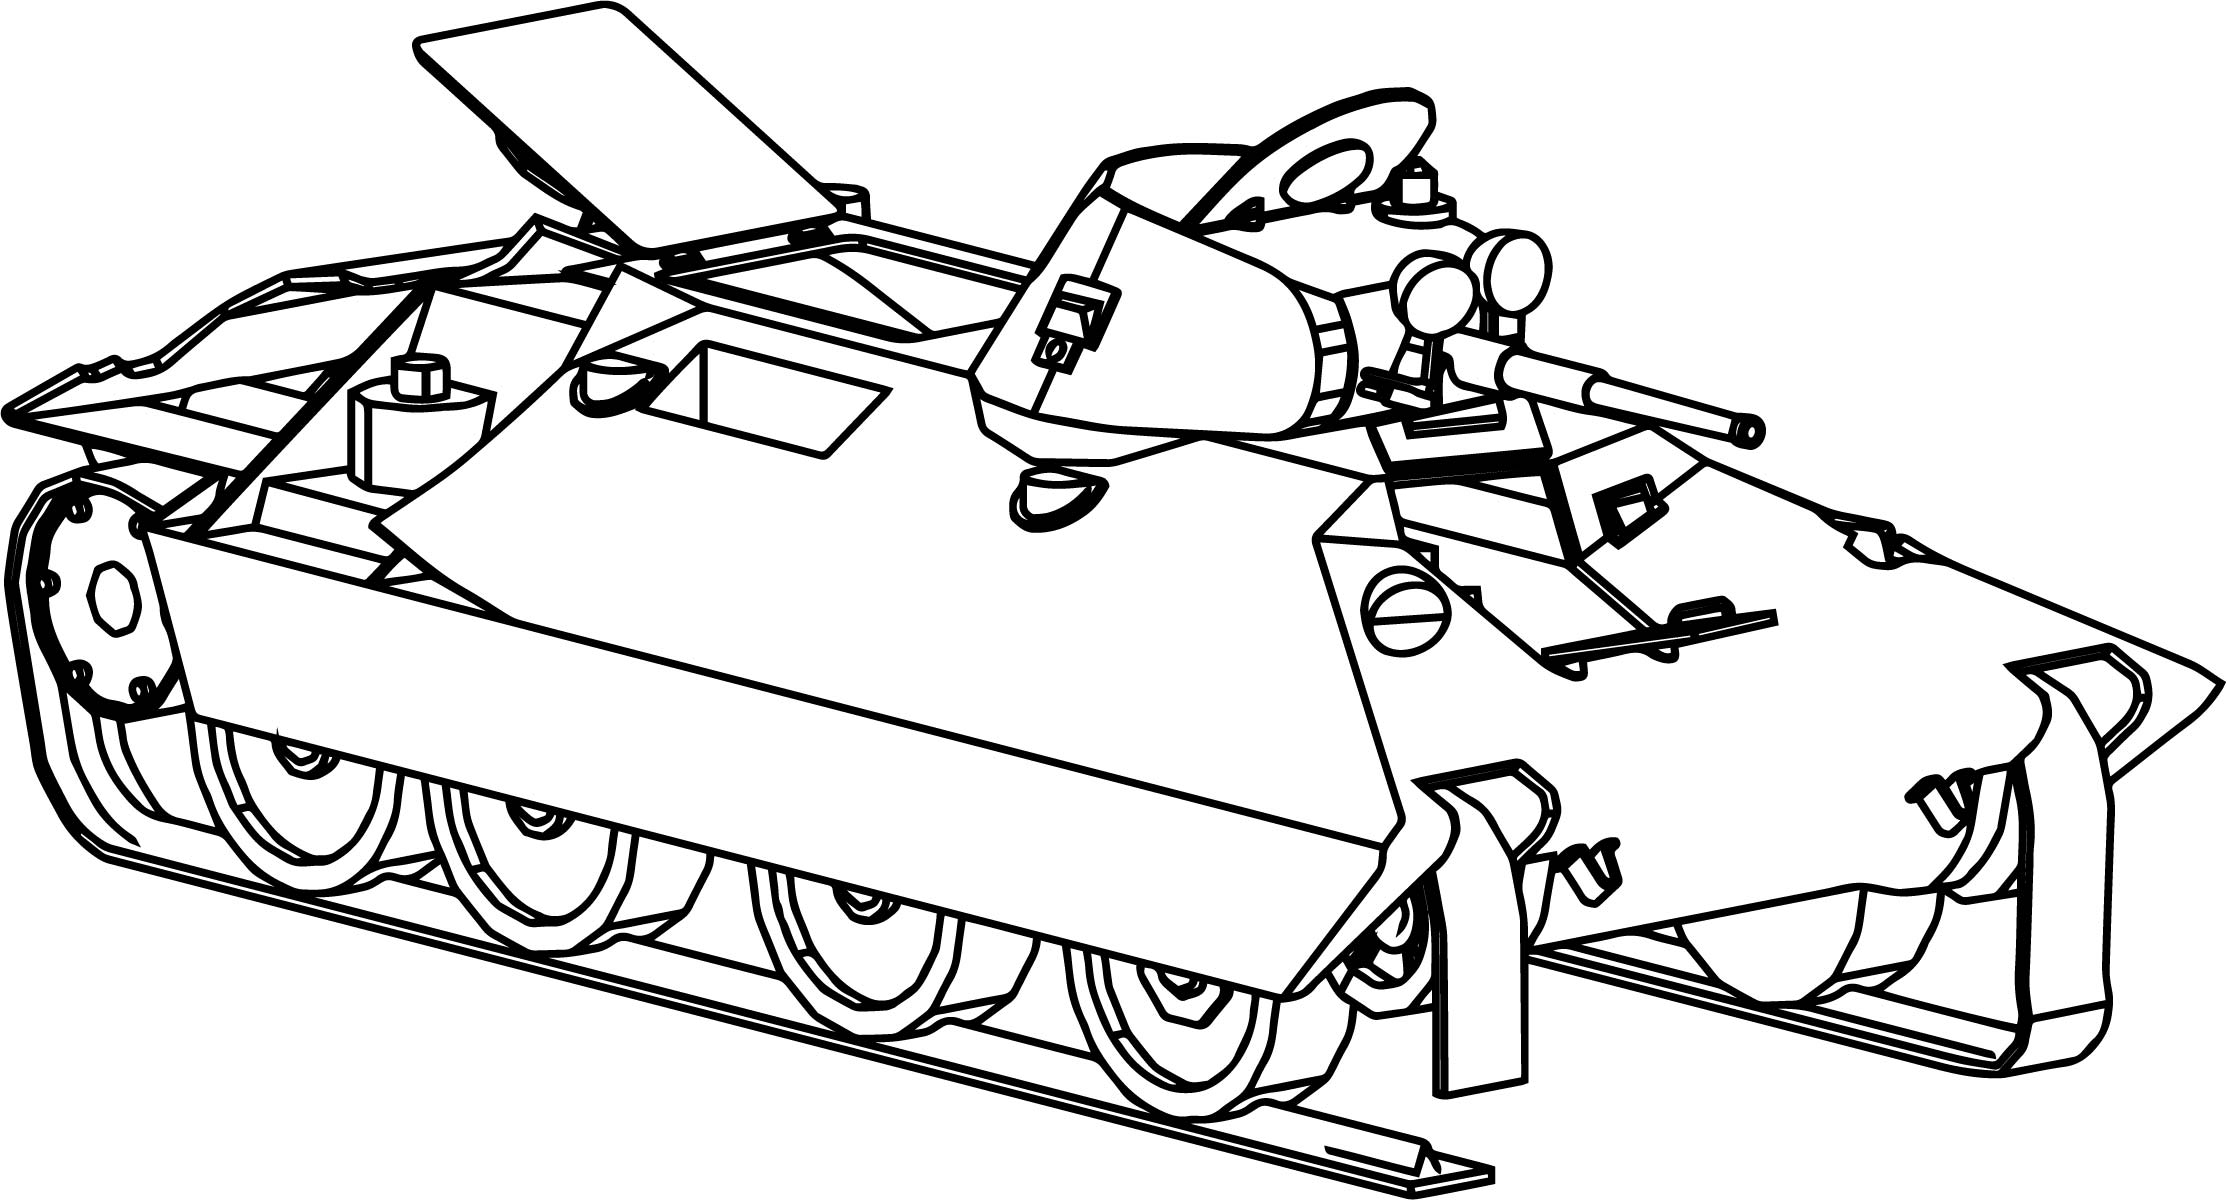 Bt sv wot tank coloring page for Tank coloring page